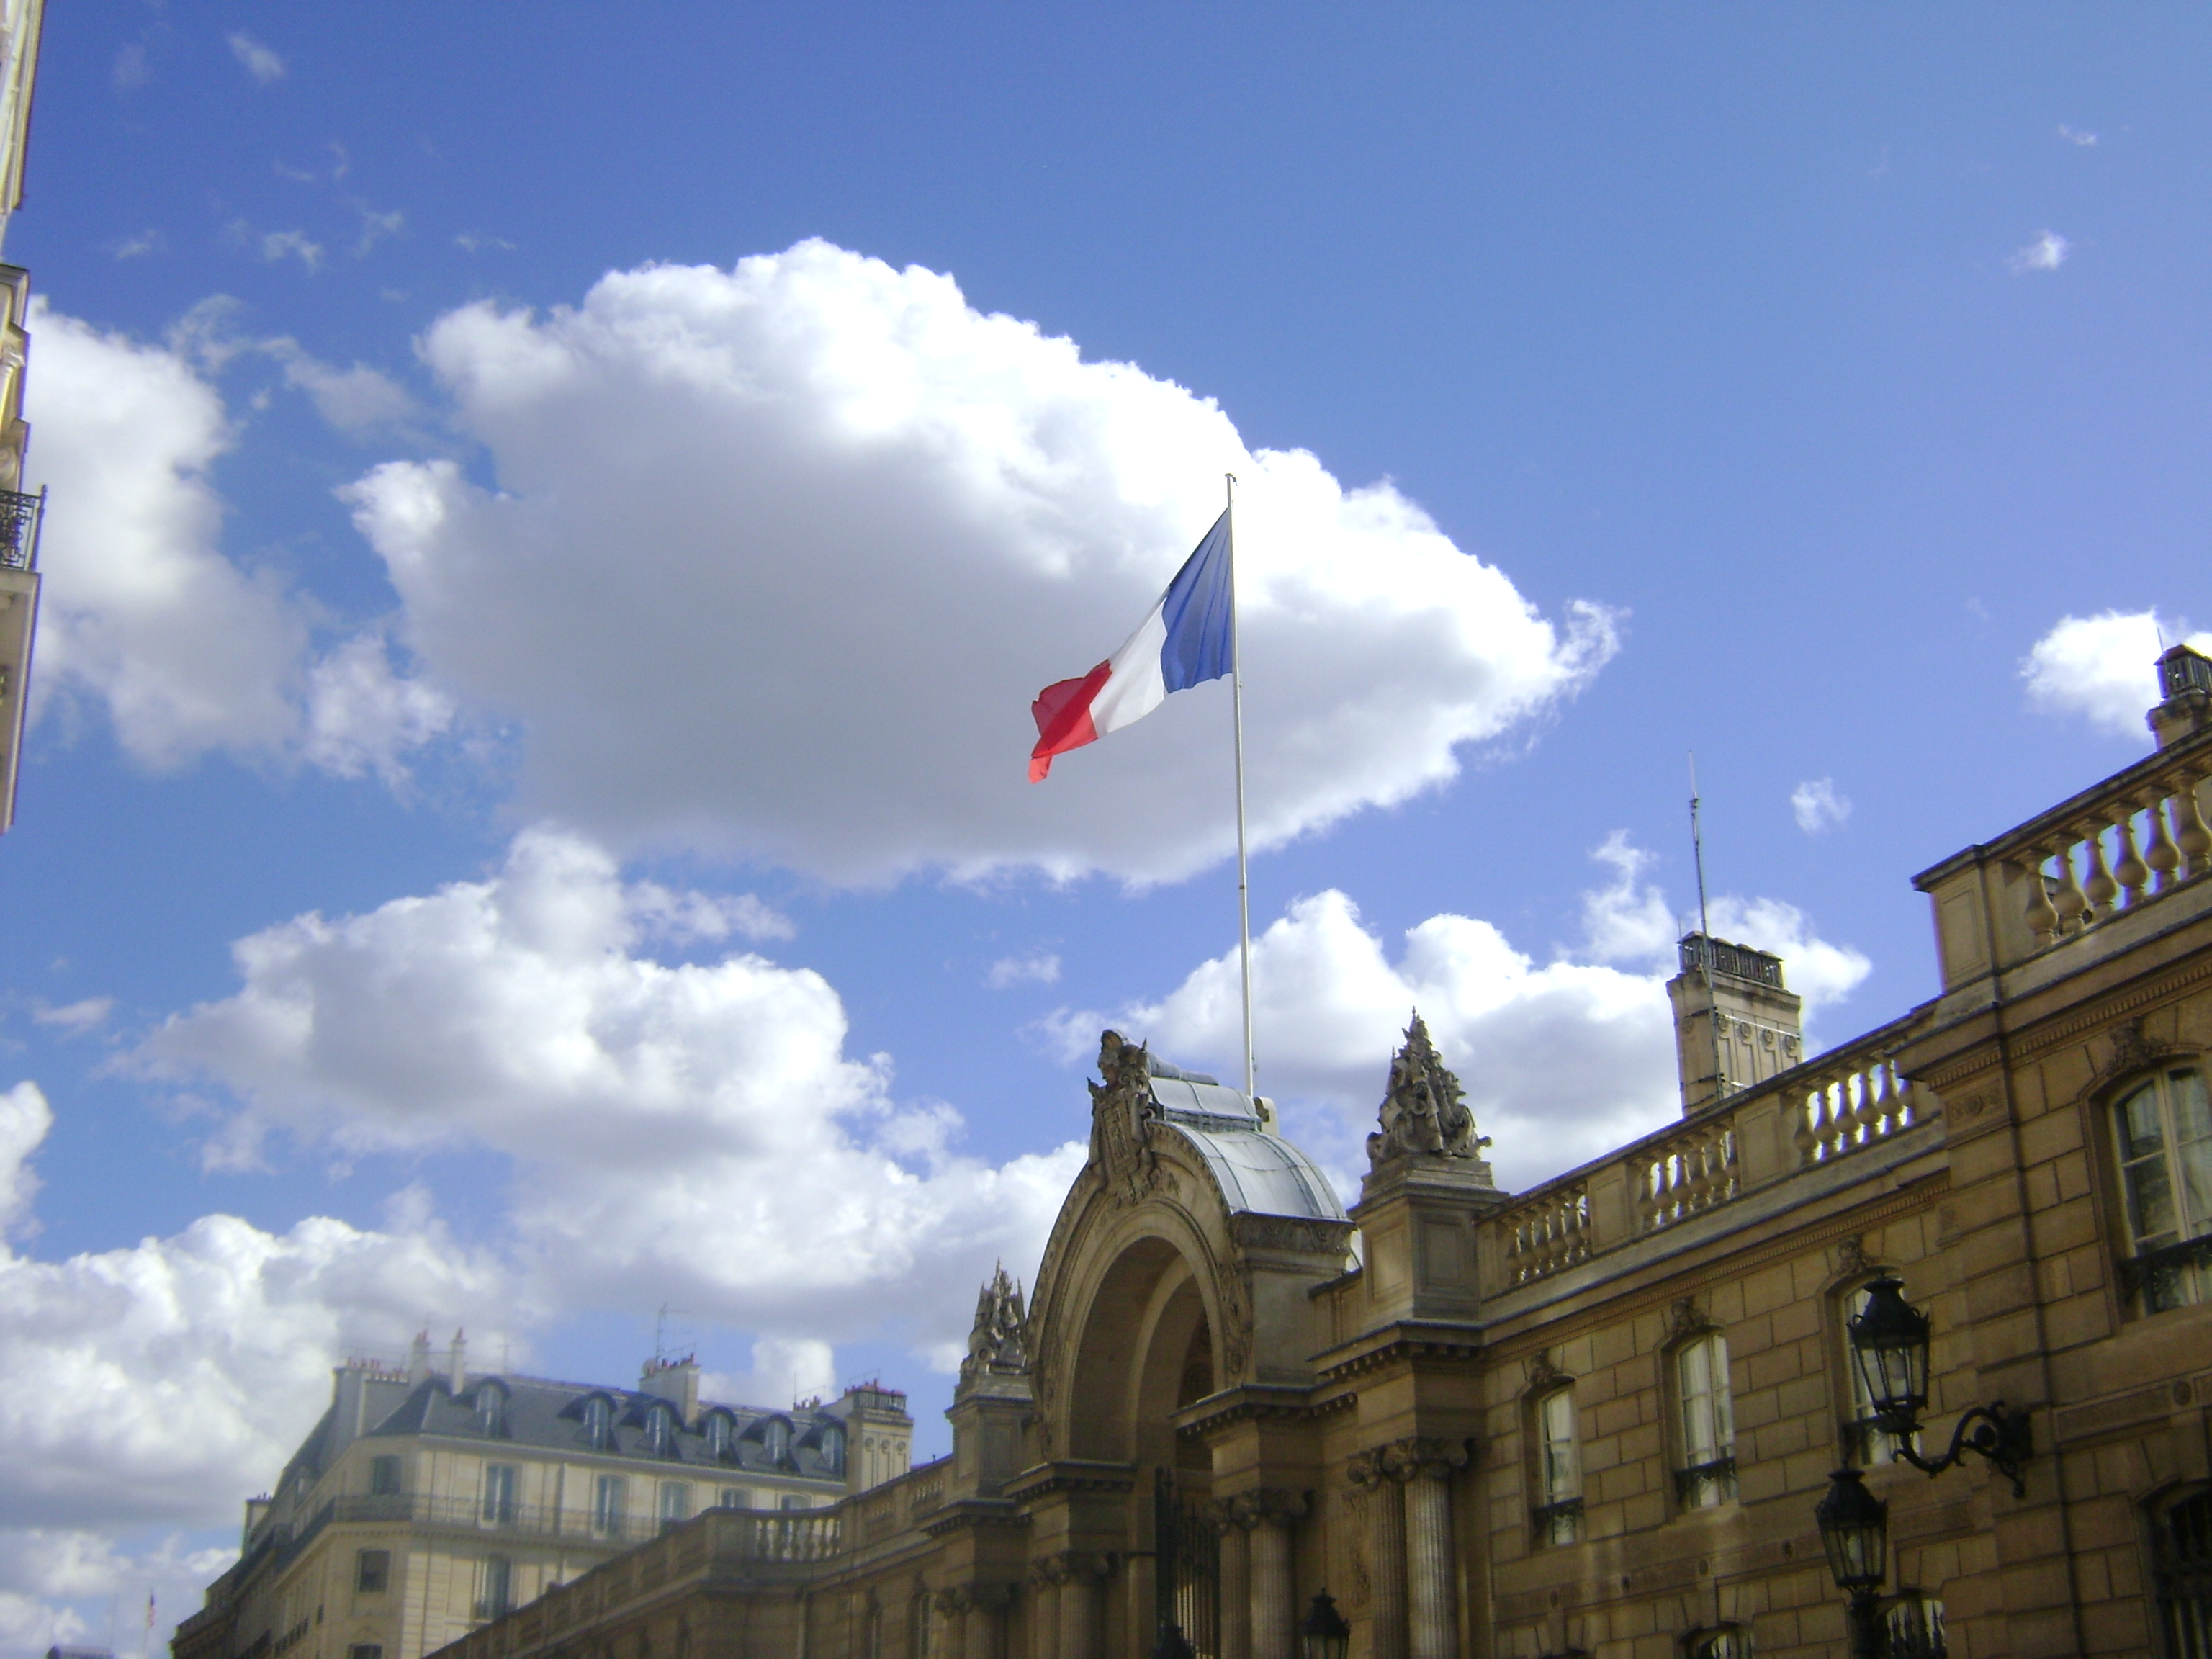 The Elysée Palace in Paris, seat of the French President.